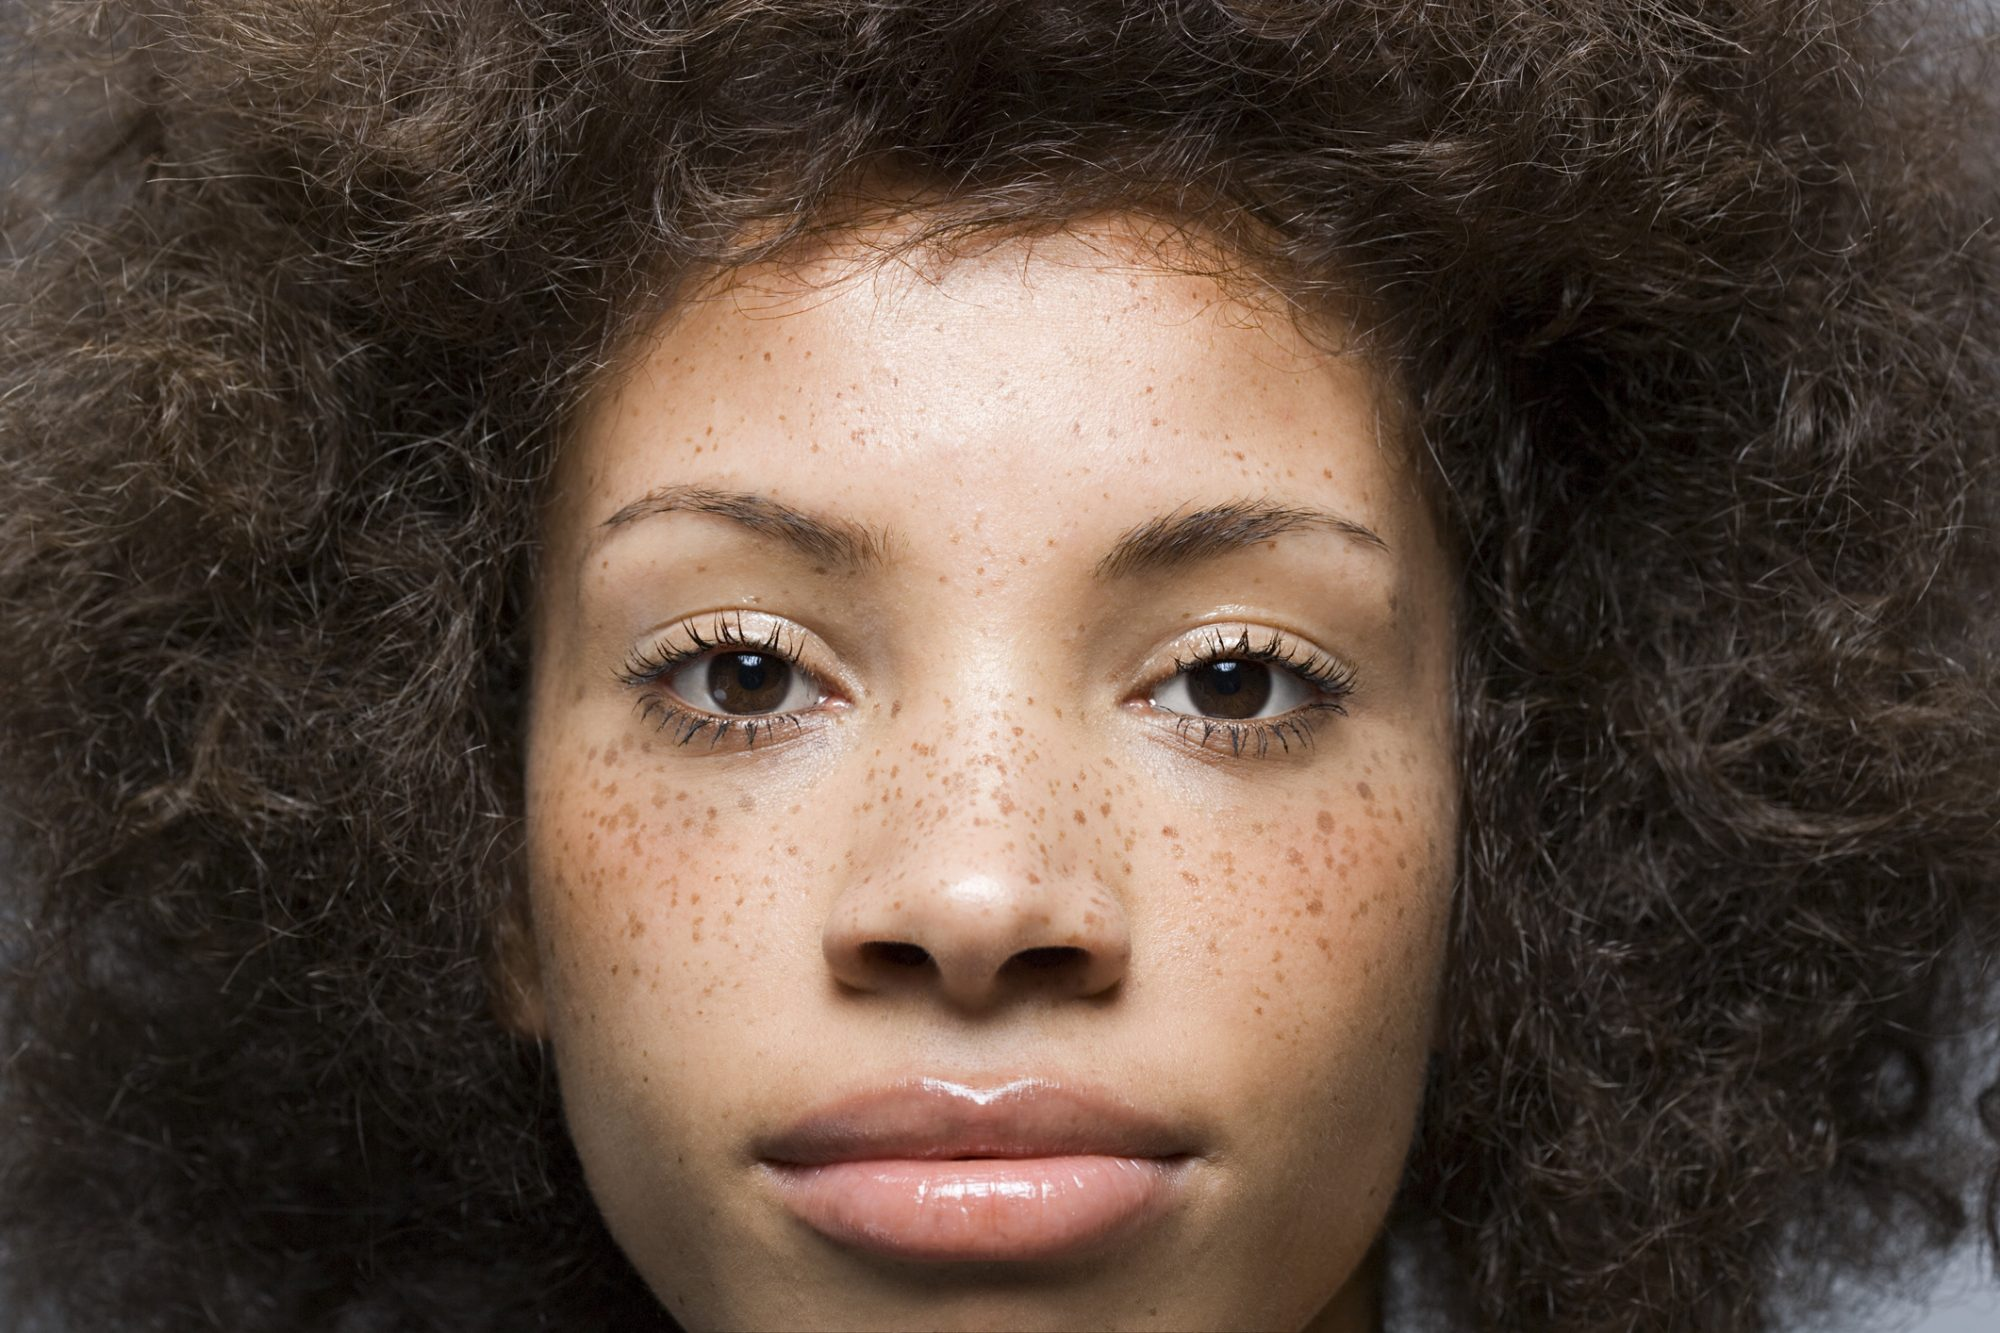 A closeup of a young woman with freckles on her face